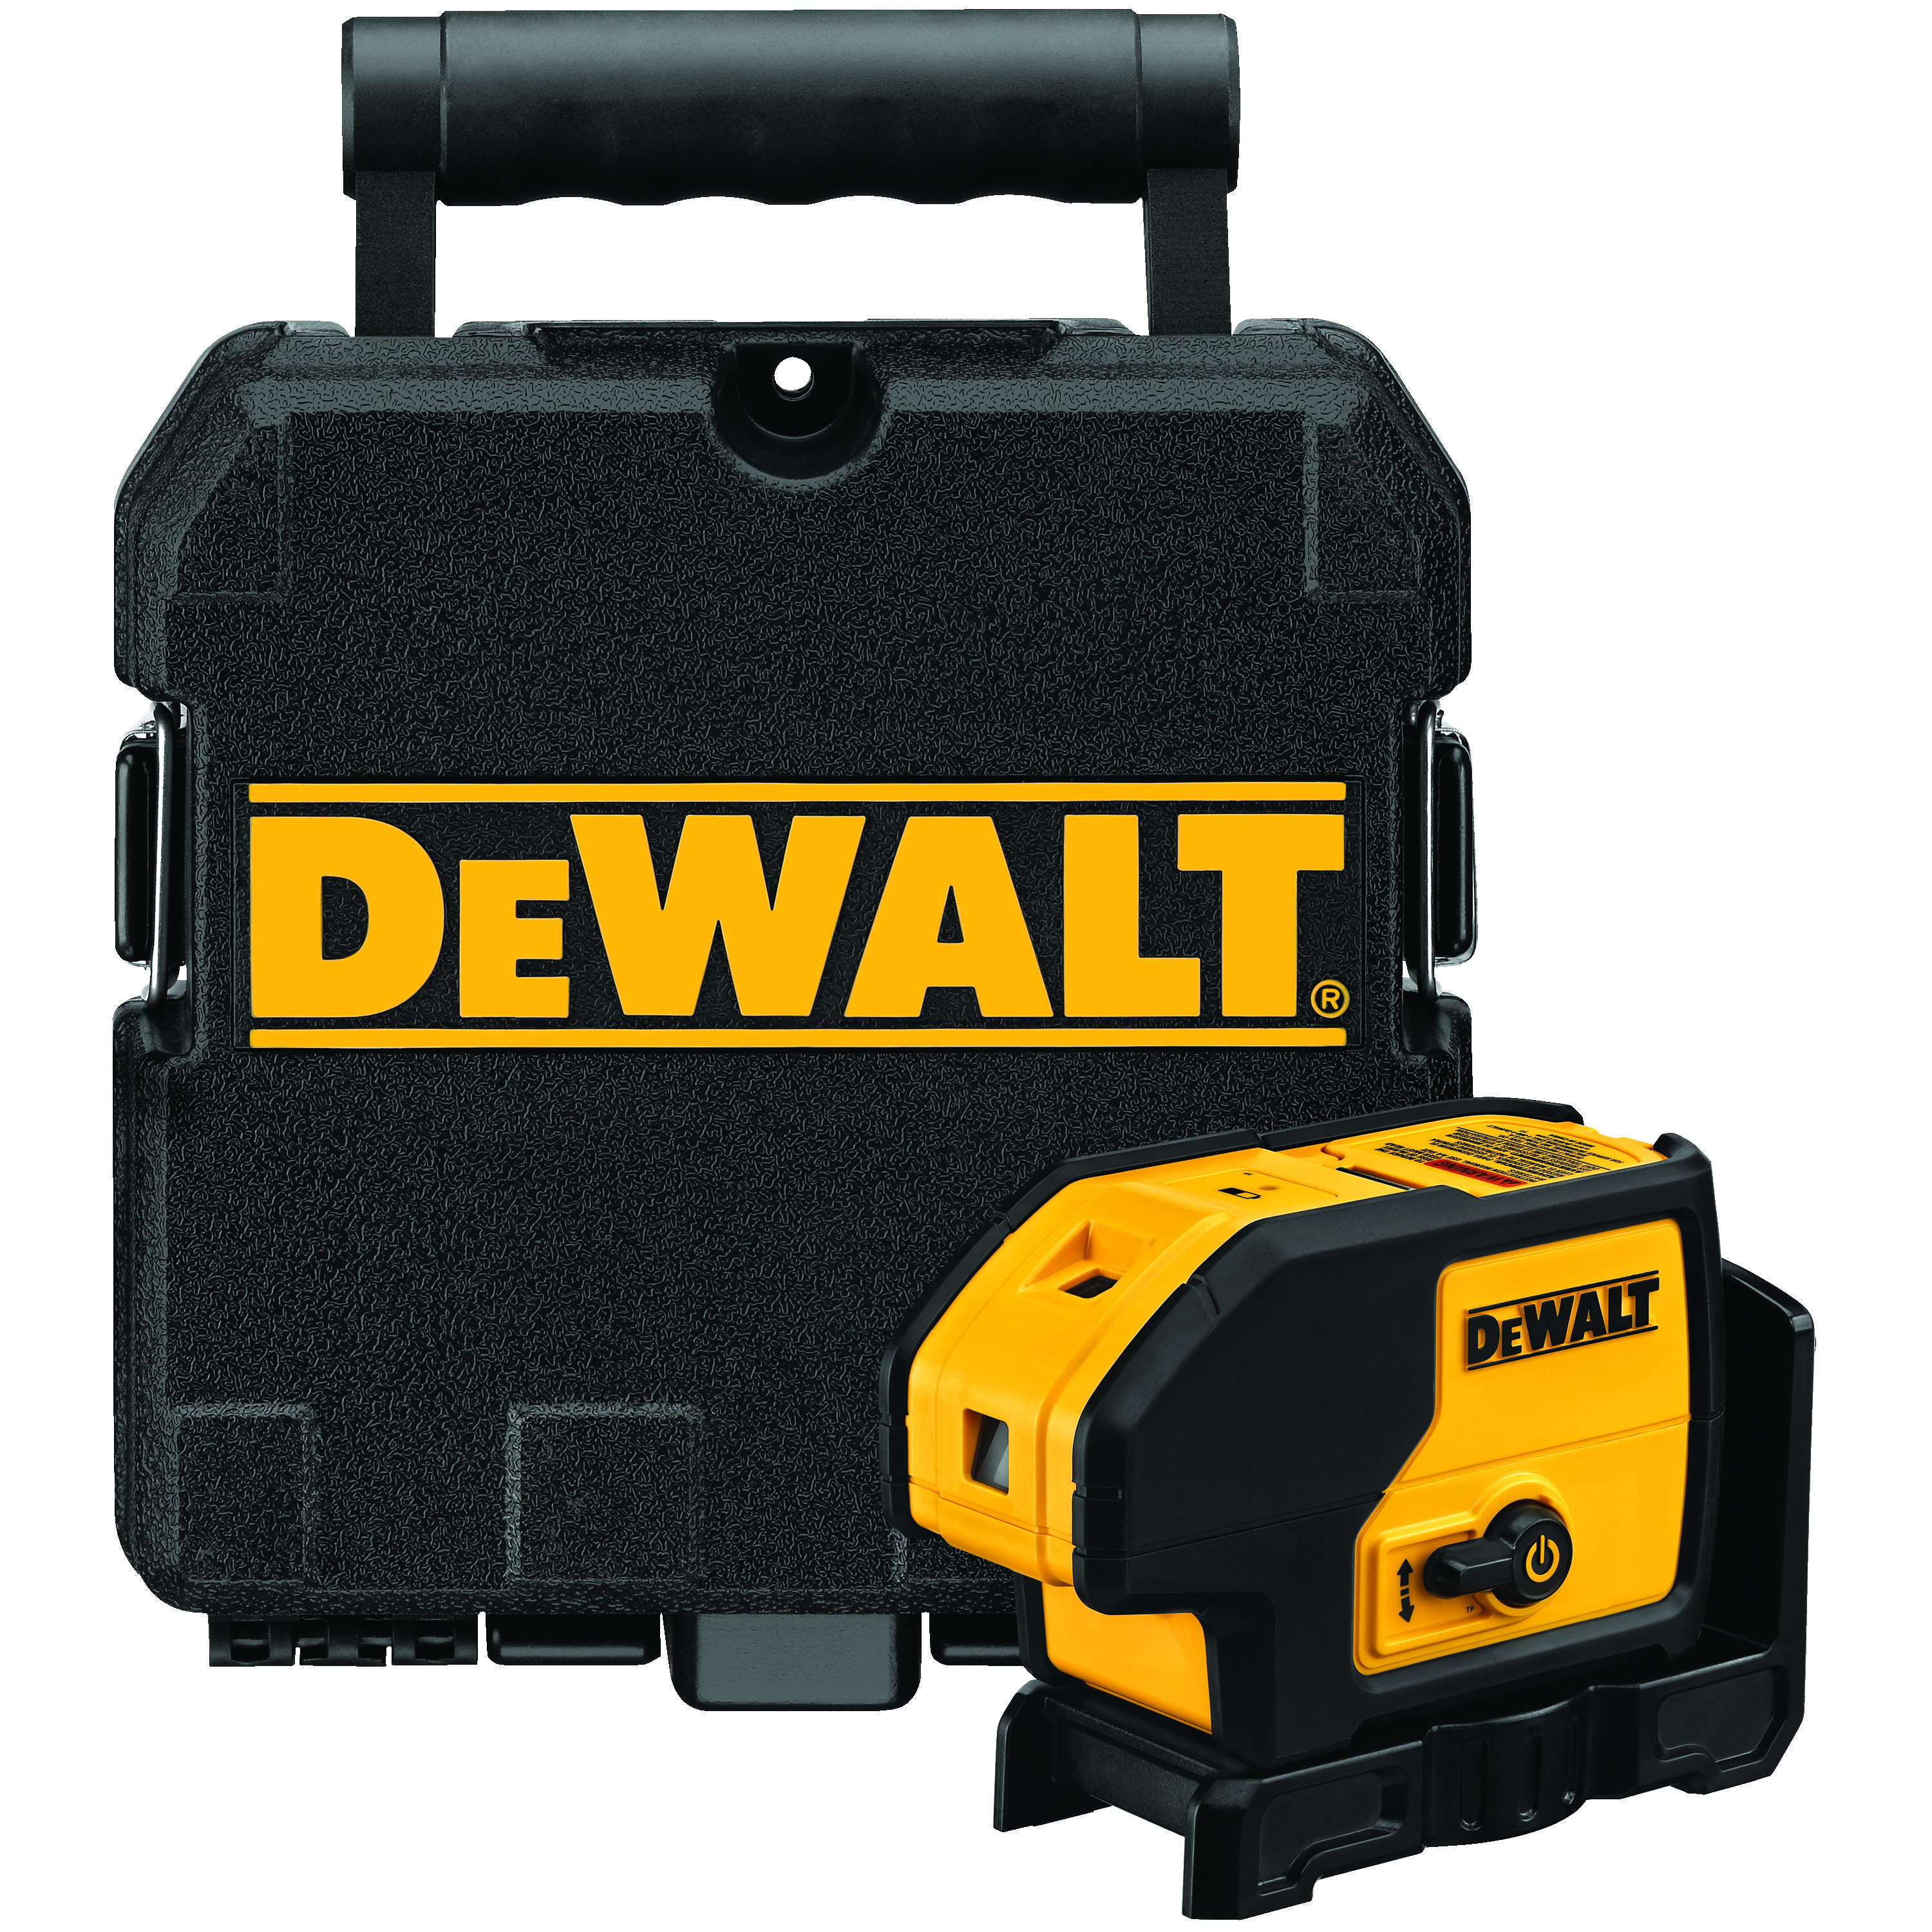 **Sale! Add to cart, save 15% more  - DeWALT® DW083K Electronic Self-Leveling Rotary Laser Level Kit, 100 ft Measuring, +/-1/4 in at 100 ft Accuracy, +/-4 deg Auto Leveling, 3 Beams